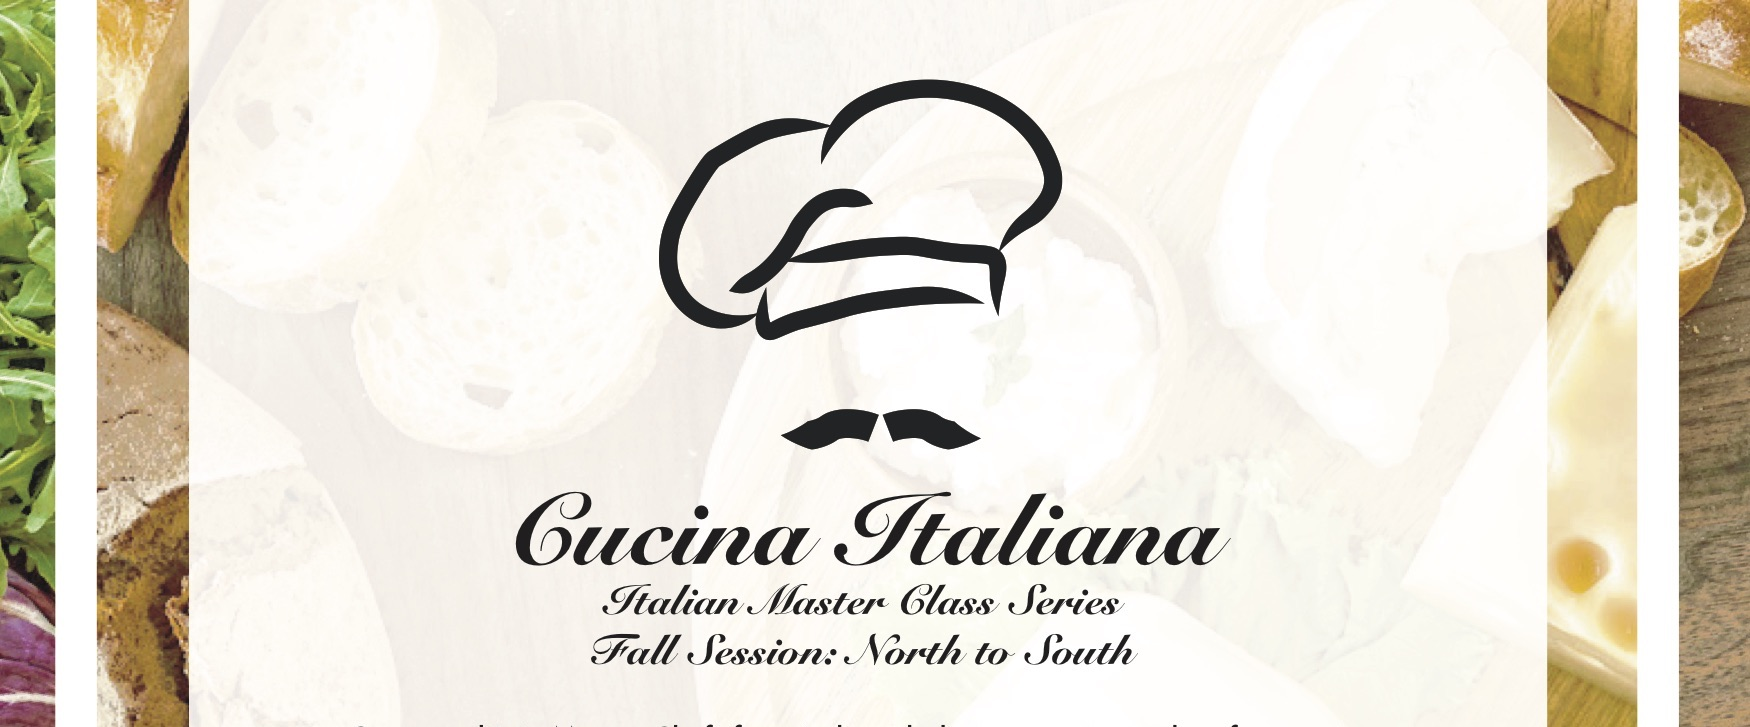 Rossini Cucina Italiana Ridgeland Menu Italian Master Class Series Fall Session Culture Of Italian